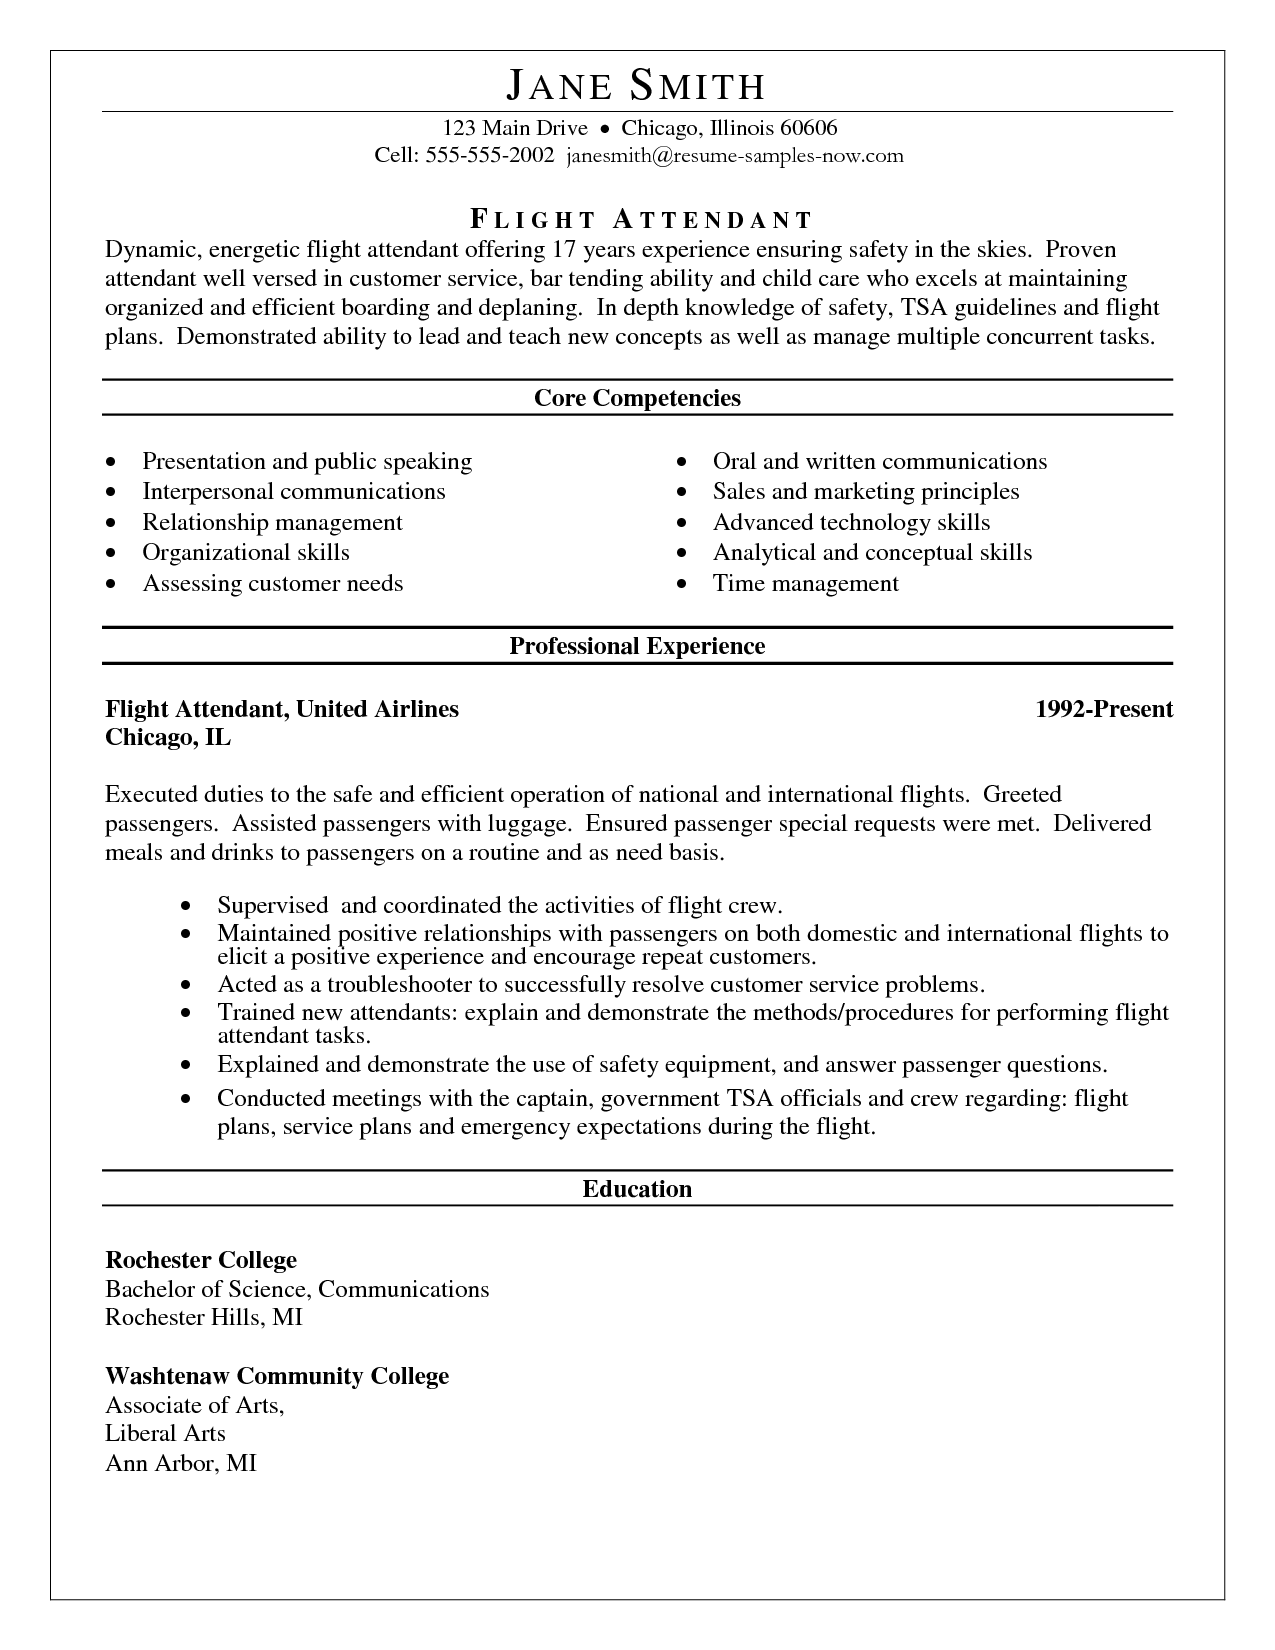 Core Competencies Resume | resume template | Pinterest | Resume ...